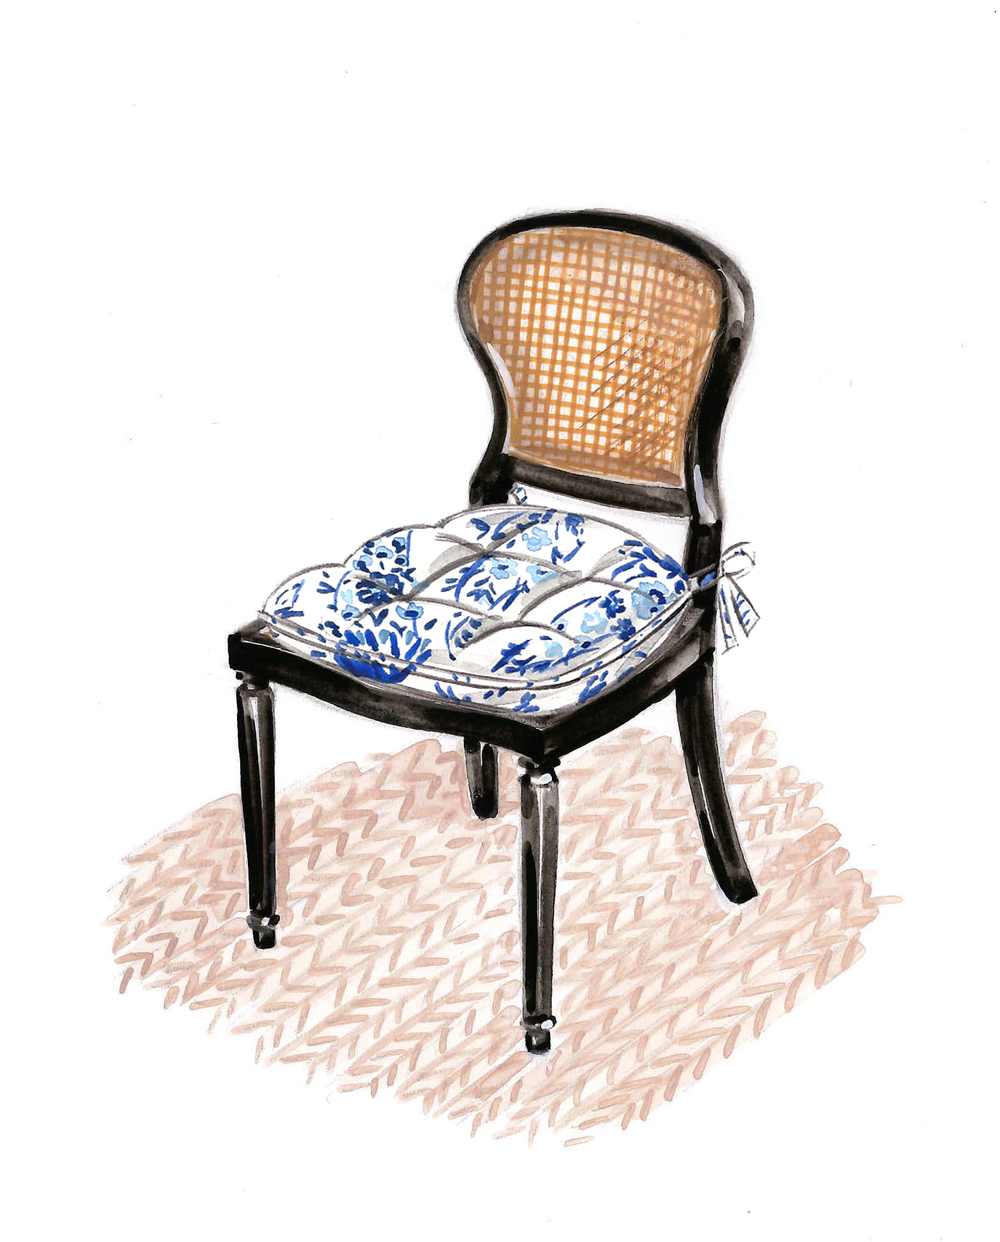 5 Dining Chair Cane w cushion.jpg